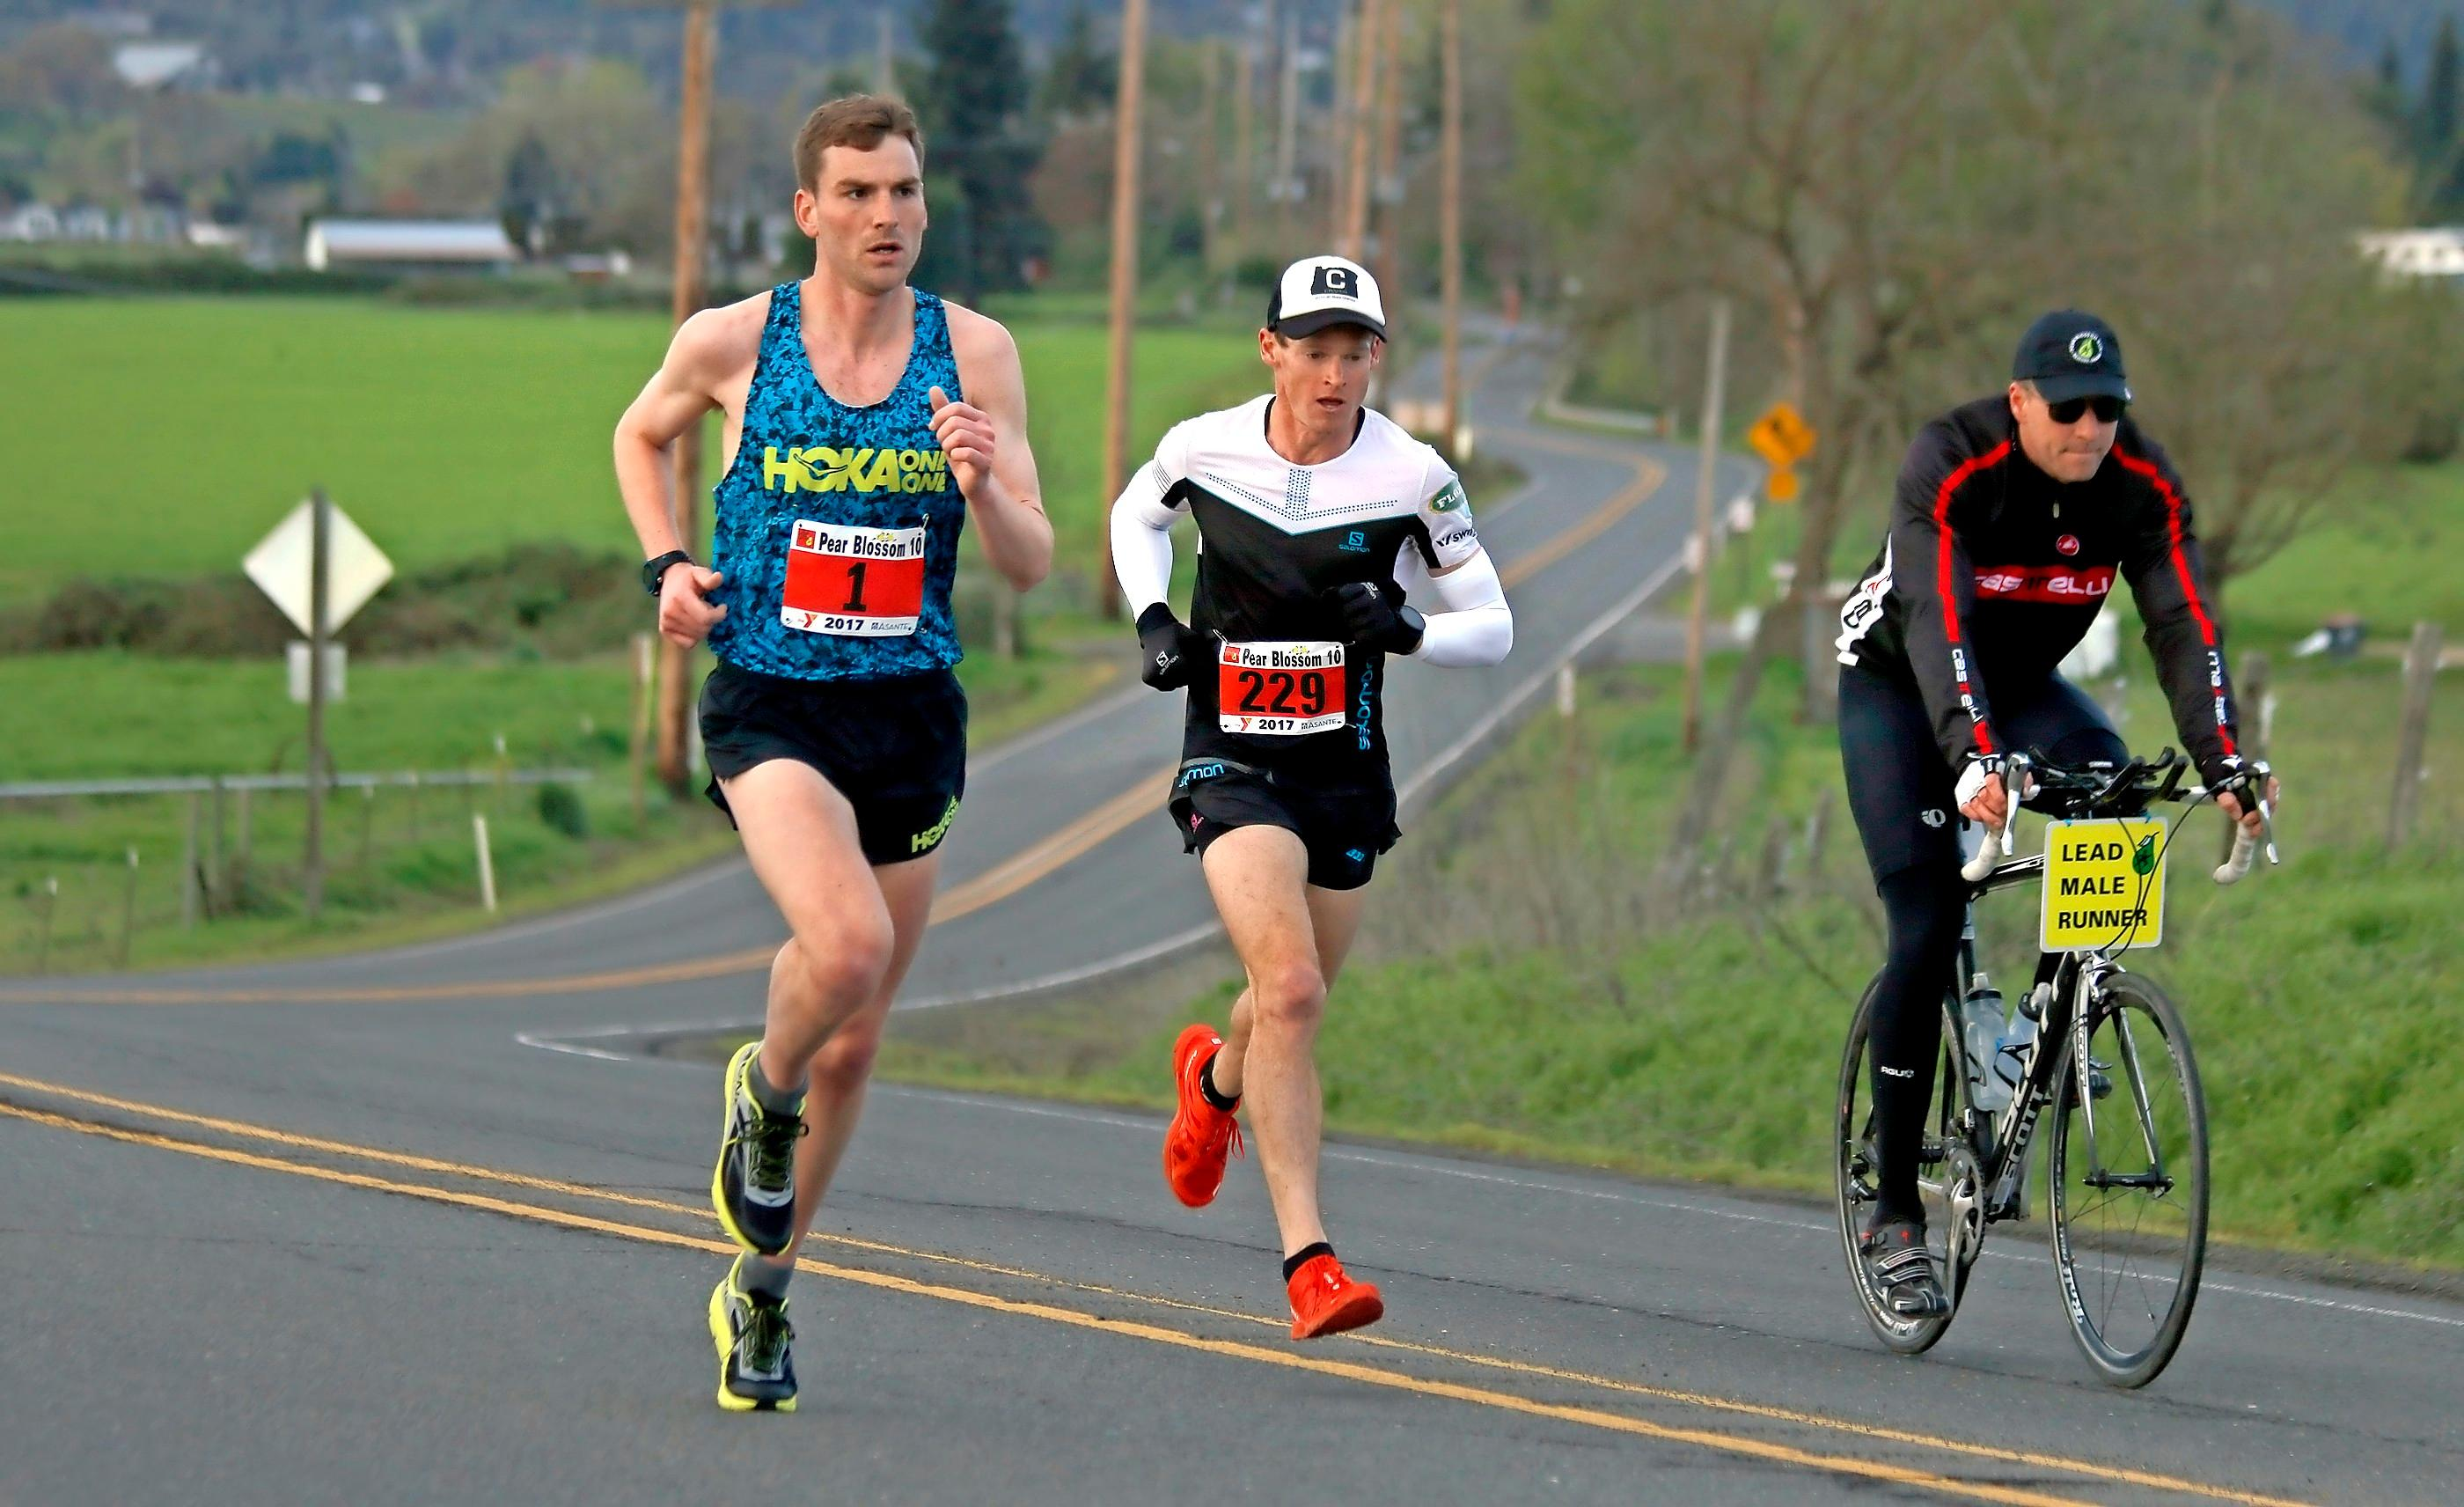 Andy Atkinson / MT File Photo Cole Watson (#1) and Max King run side-by-side heading to the turnaround past Hanley Hill during the 2017 Pear Blossom 10-mile run.